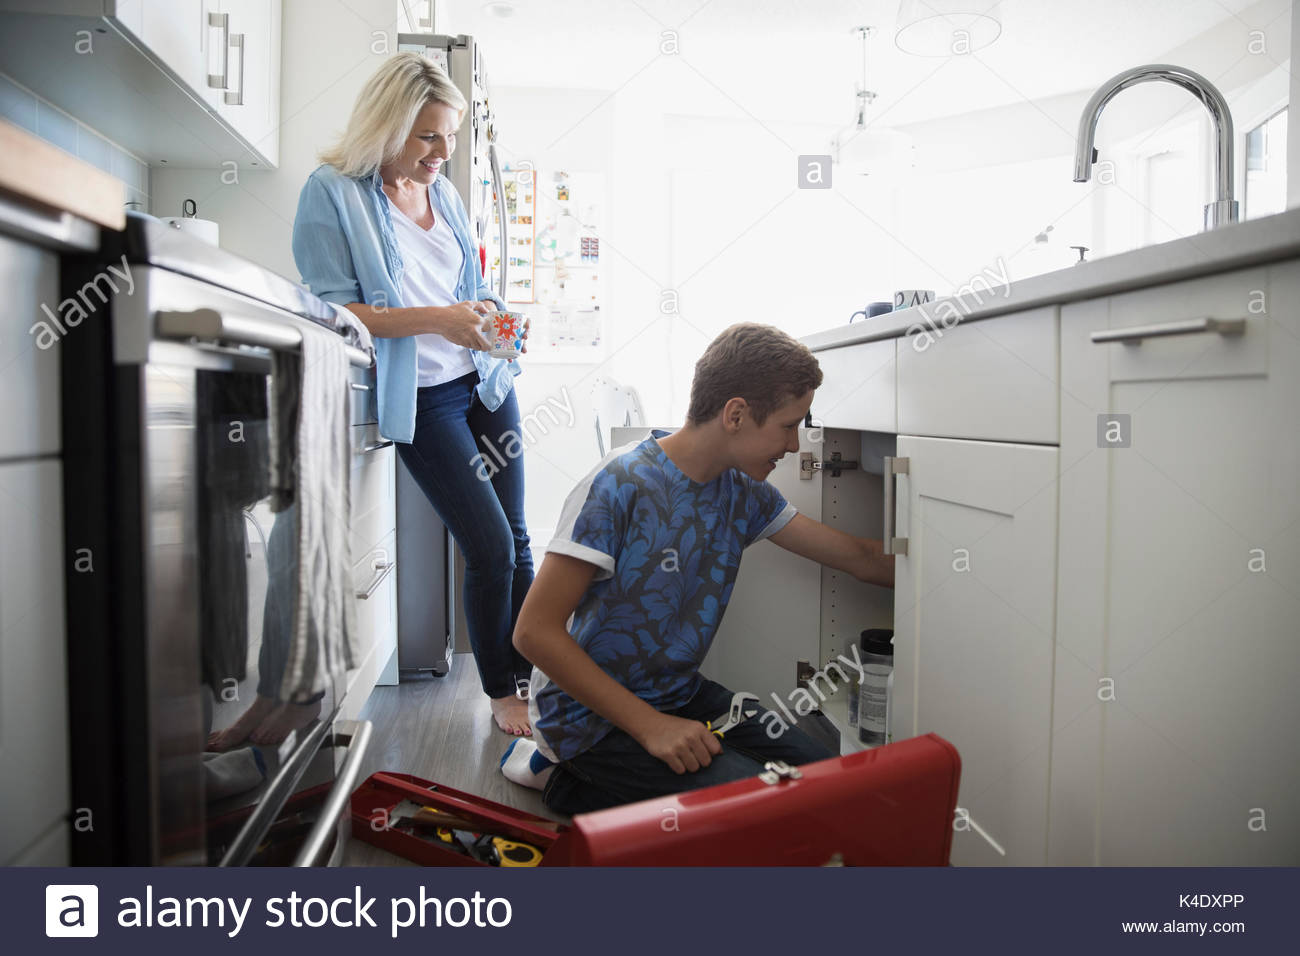 Single mother watching pre-adolescent son fixing plumbing under kitchen sink - Stock Image